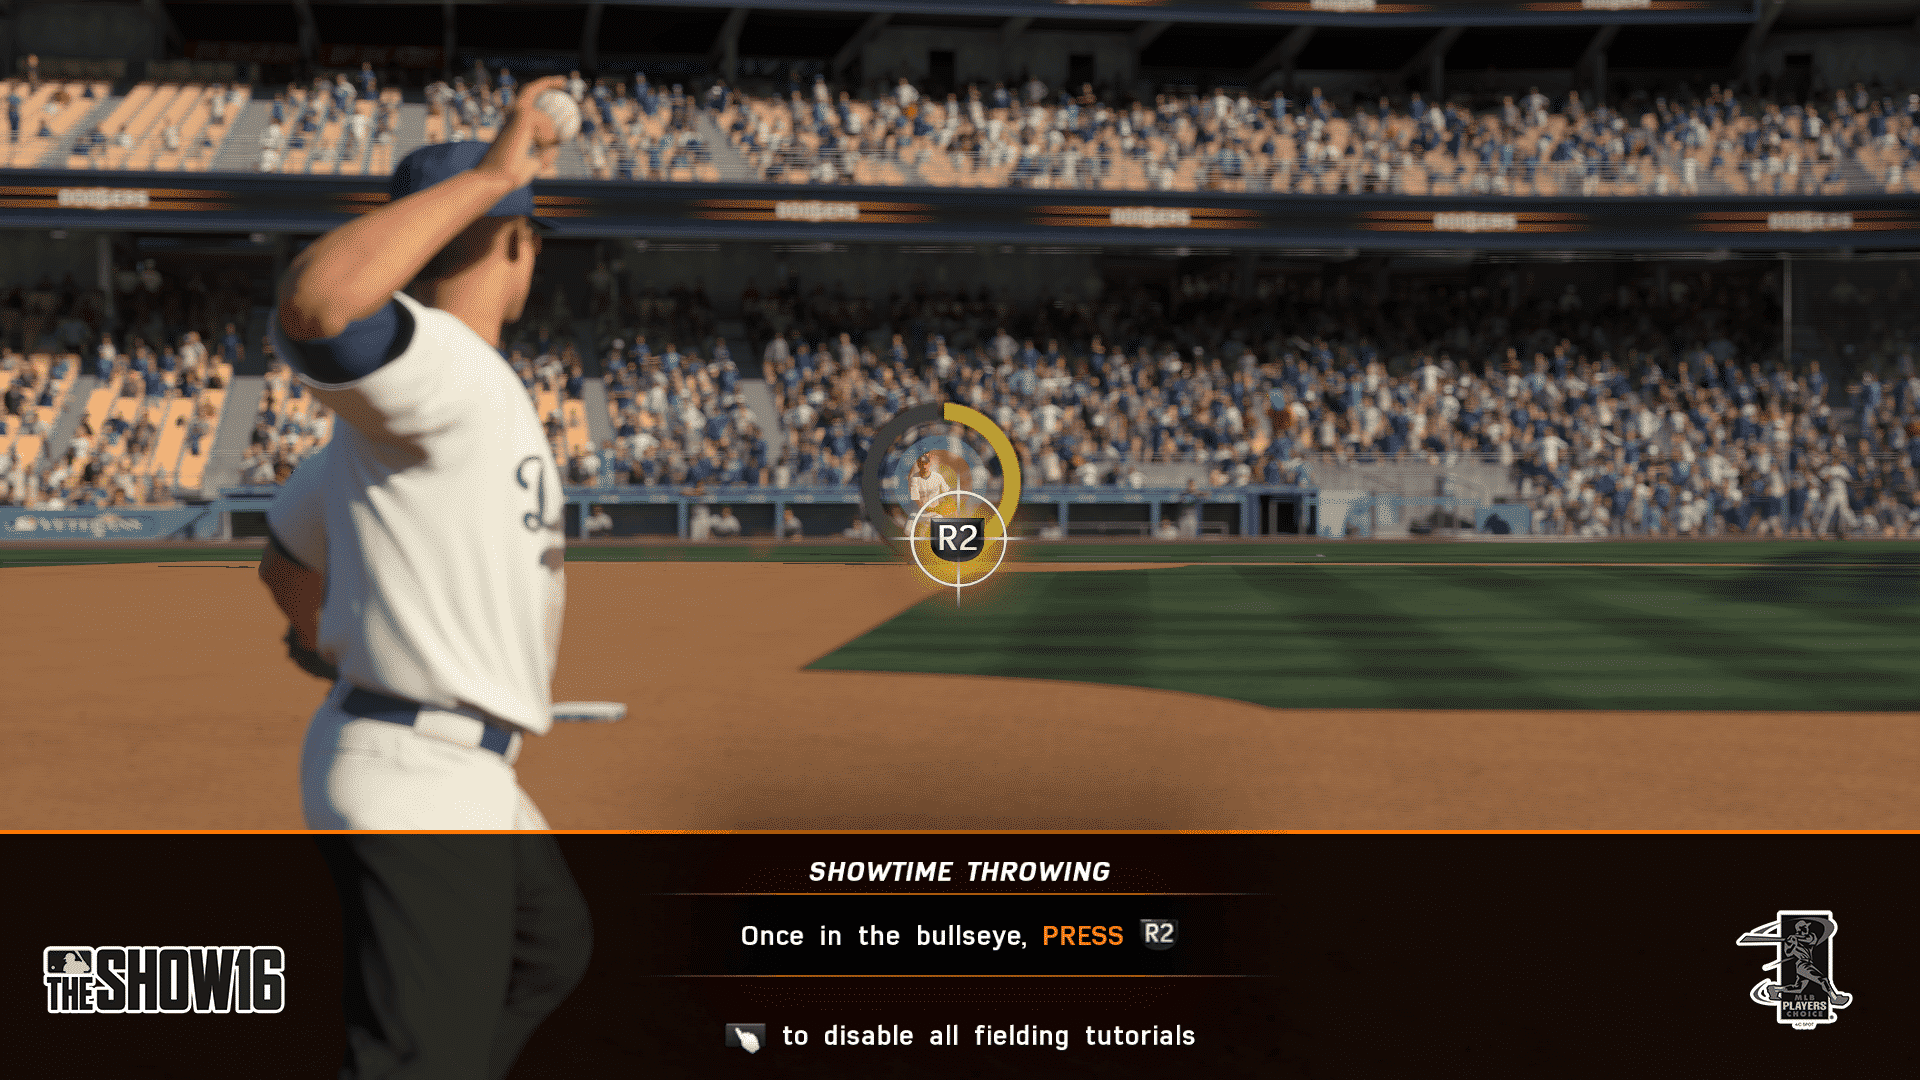 mlb 16 Showtime throwing tutorial